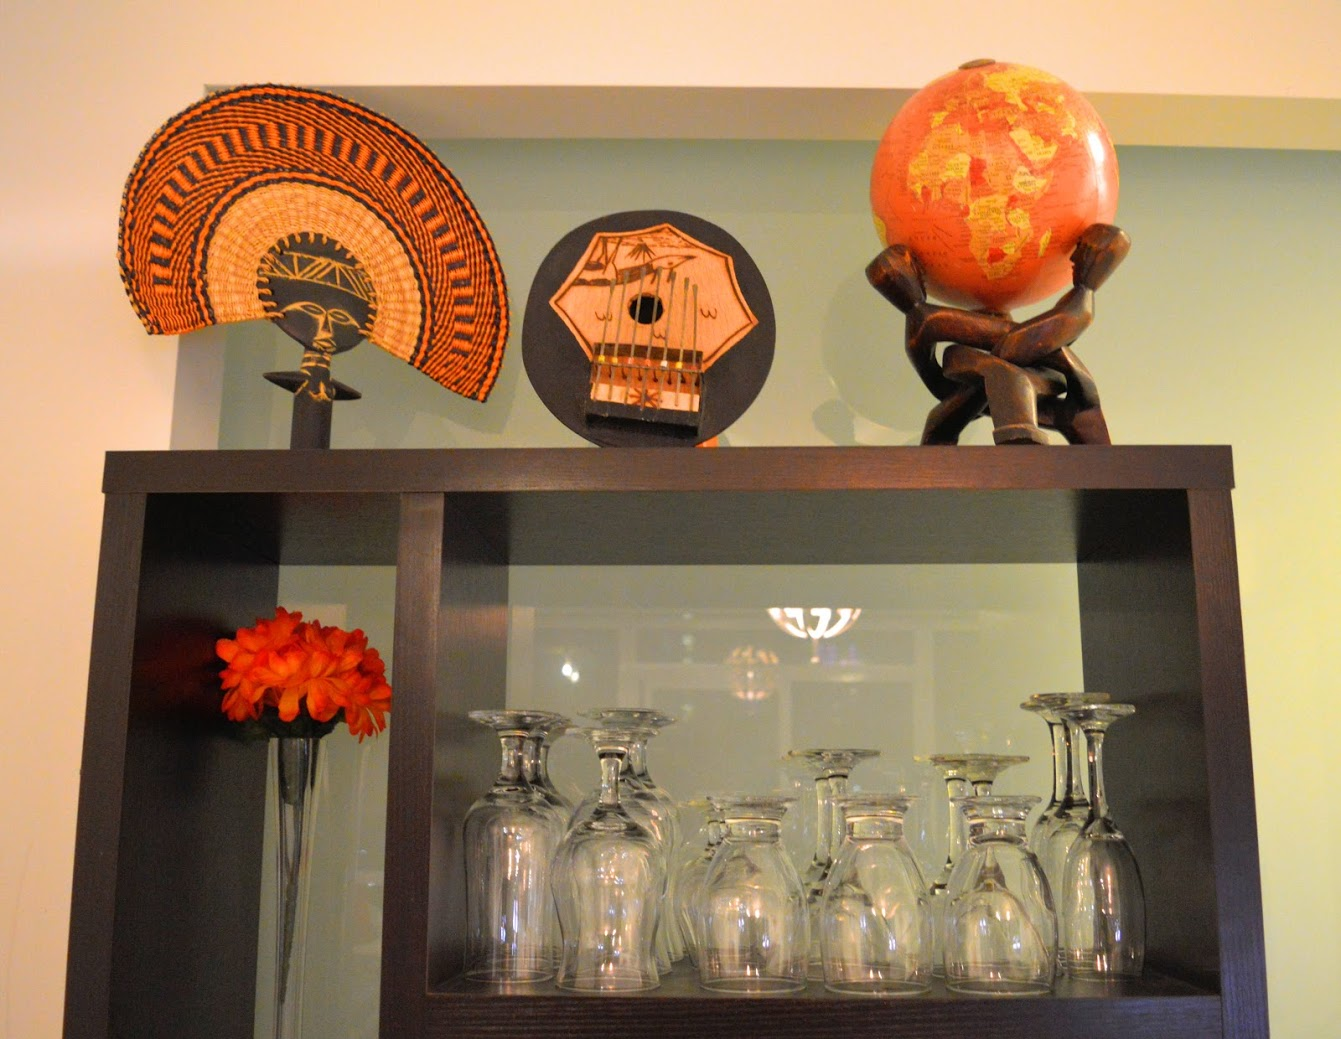 The afrofusion spot interior design adding african art to your october 15 2015 amipublicfo Image collections